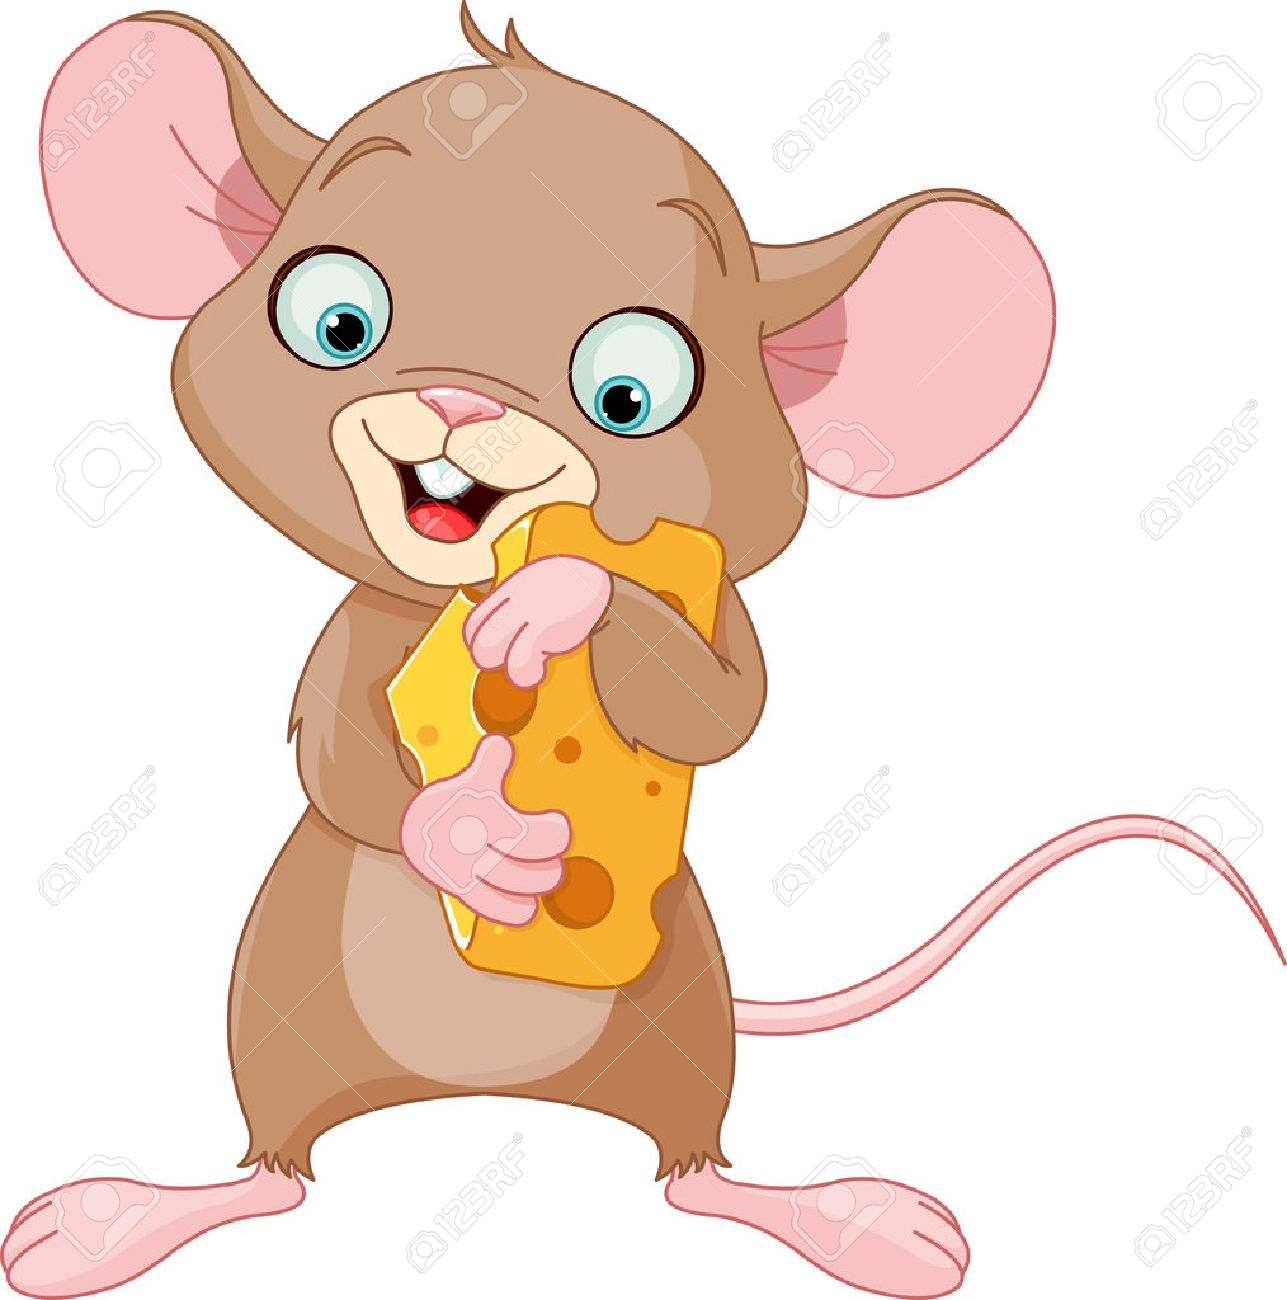 Clip Art Mouse Stock Photos & Pictures. Royalty Free Clip Art ...